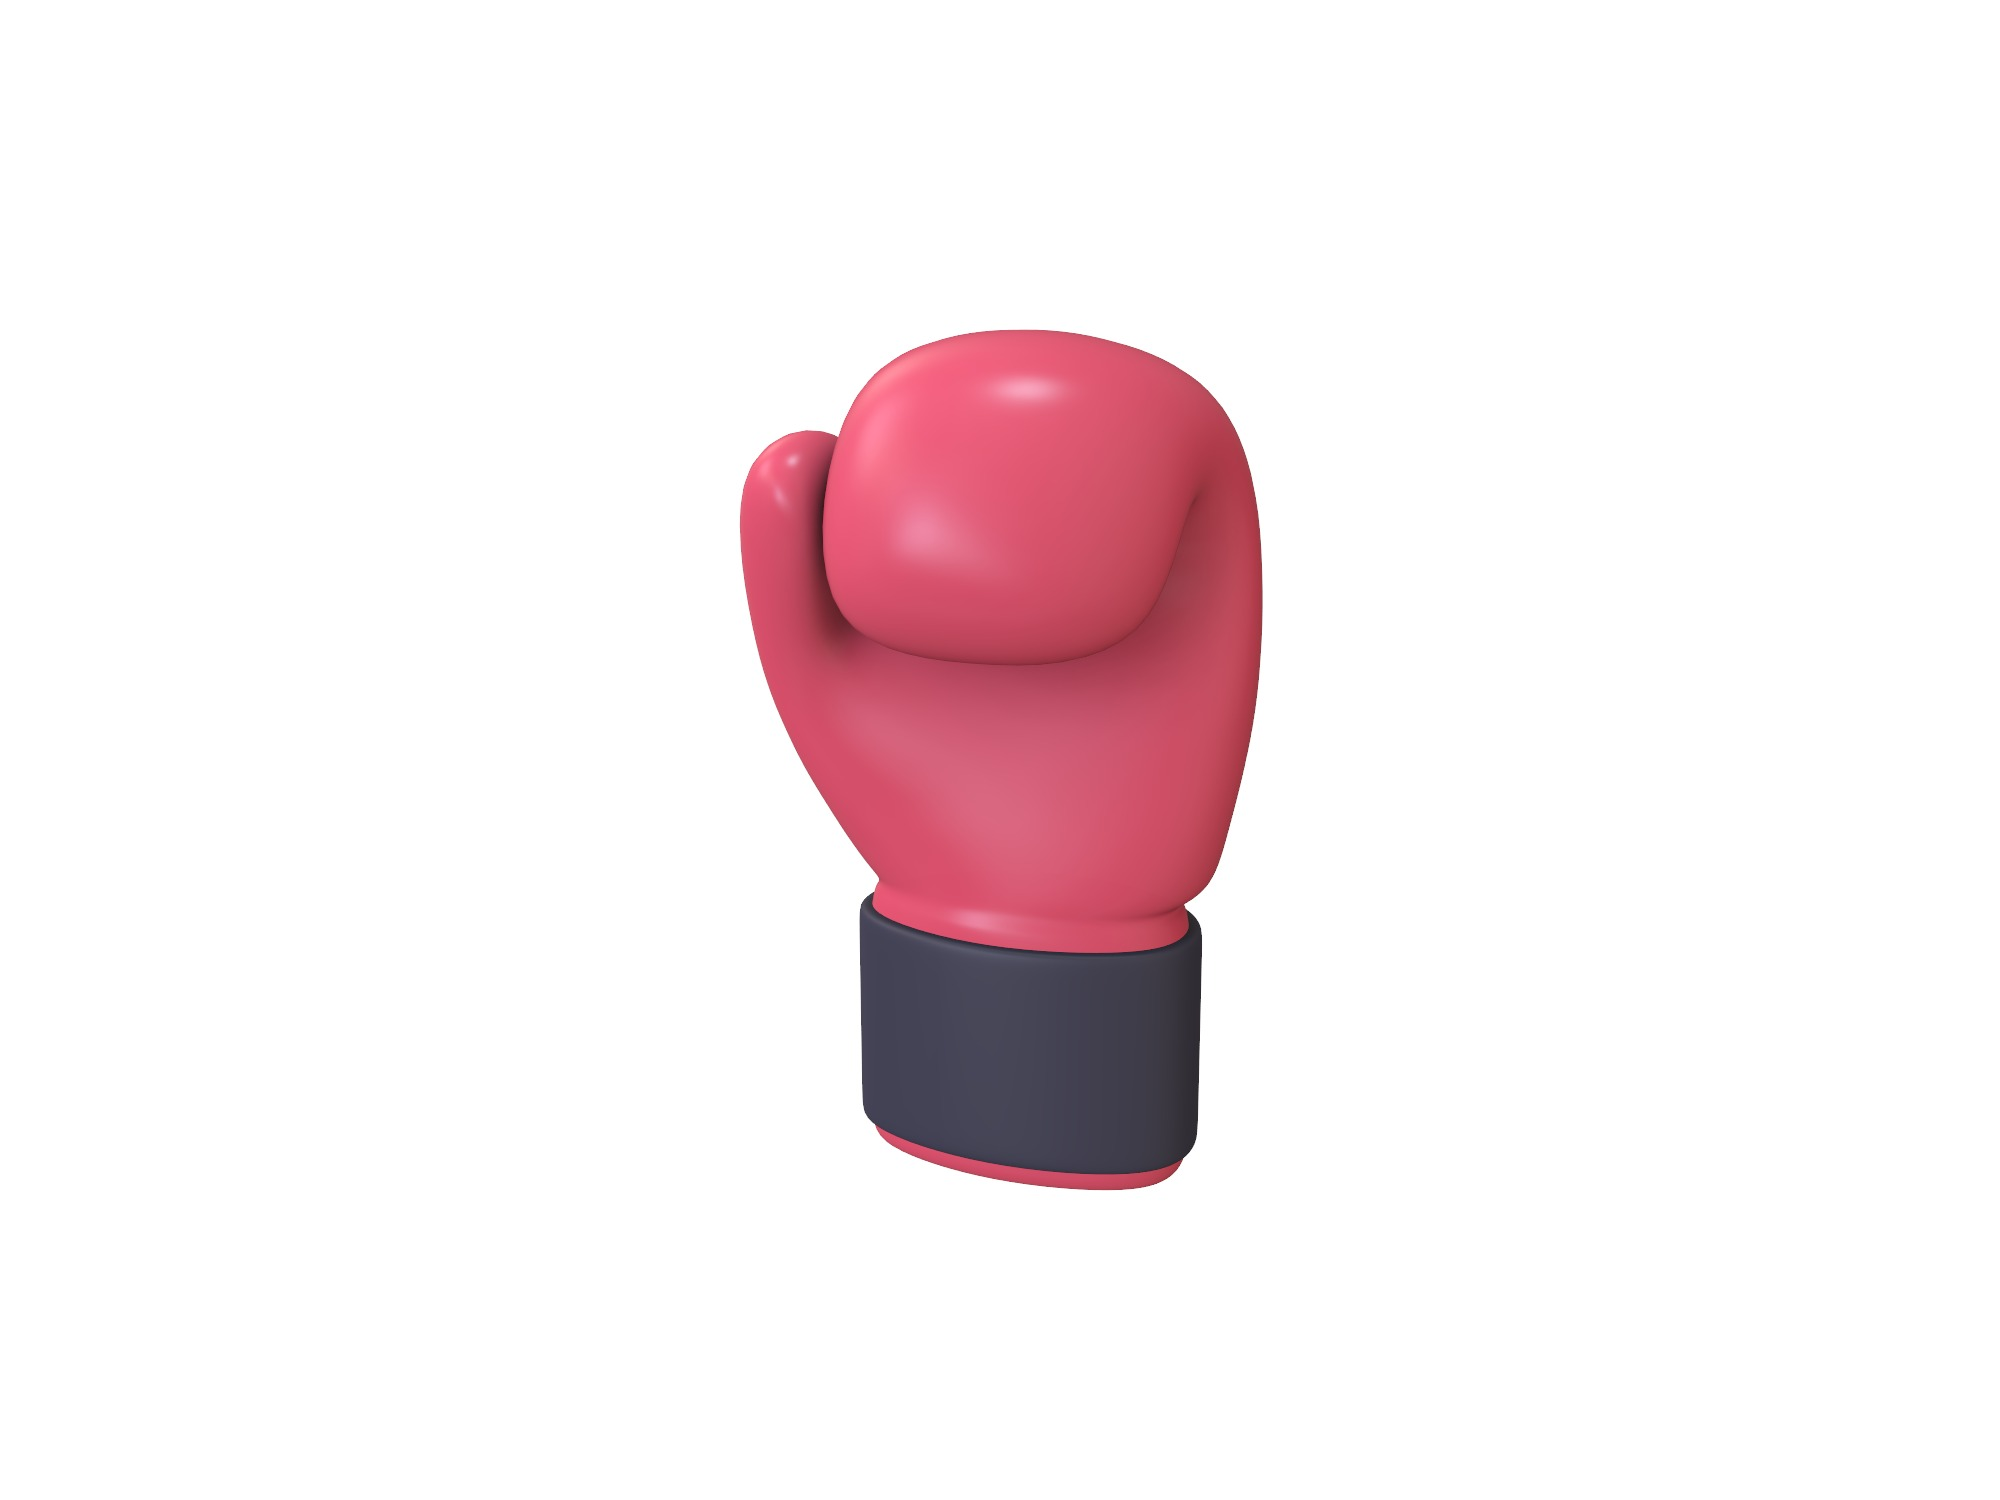 Boxing glove - 3D design by Vectary assets Jun 3, 2018